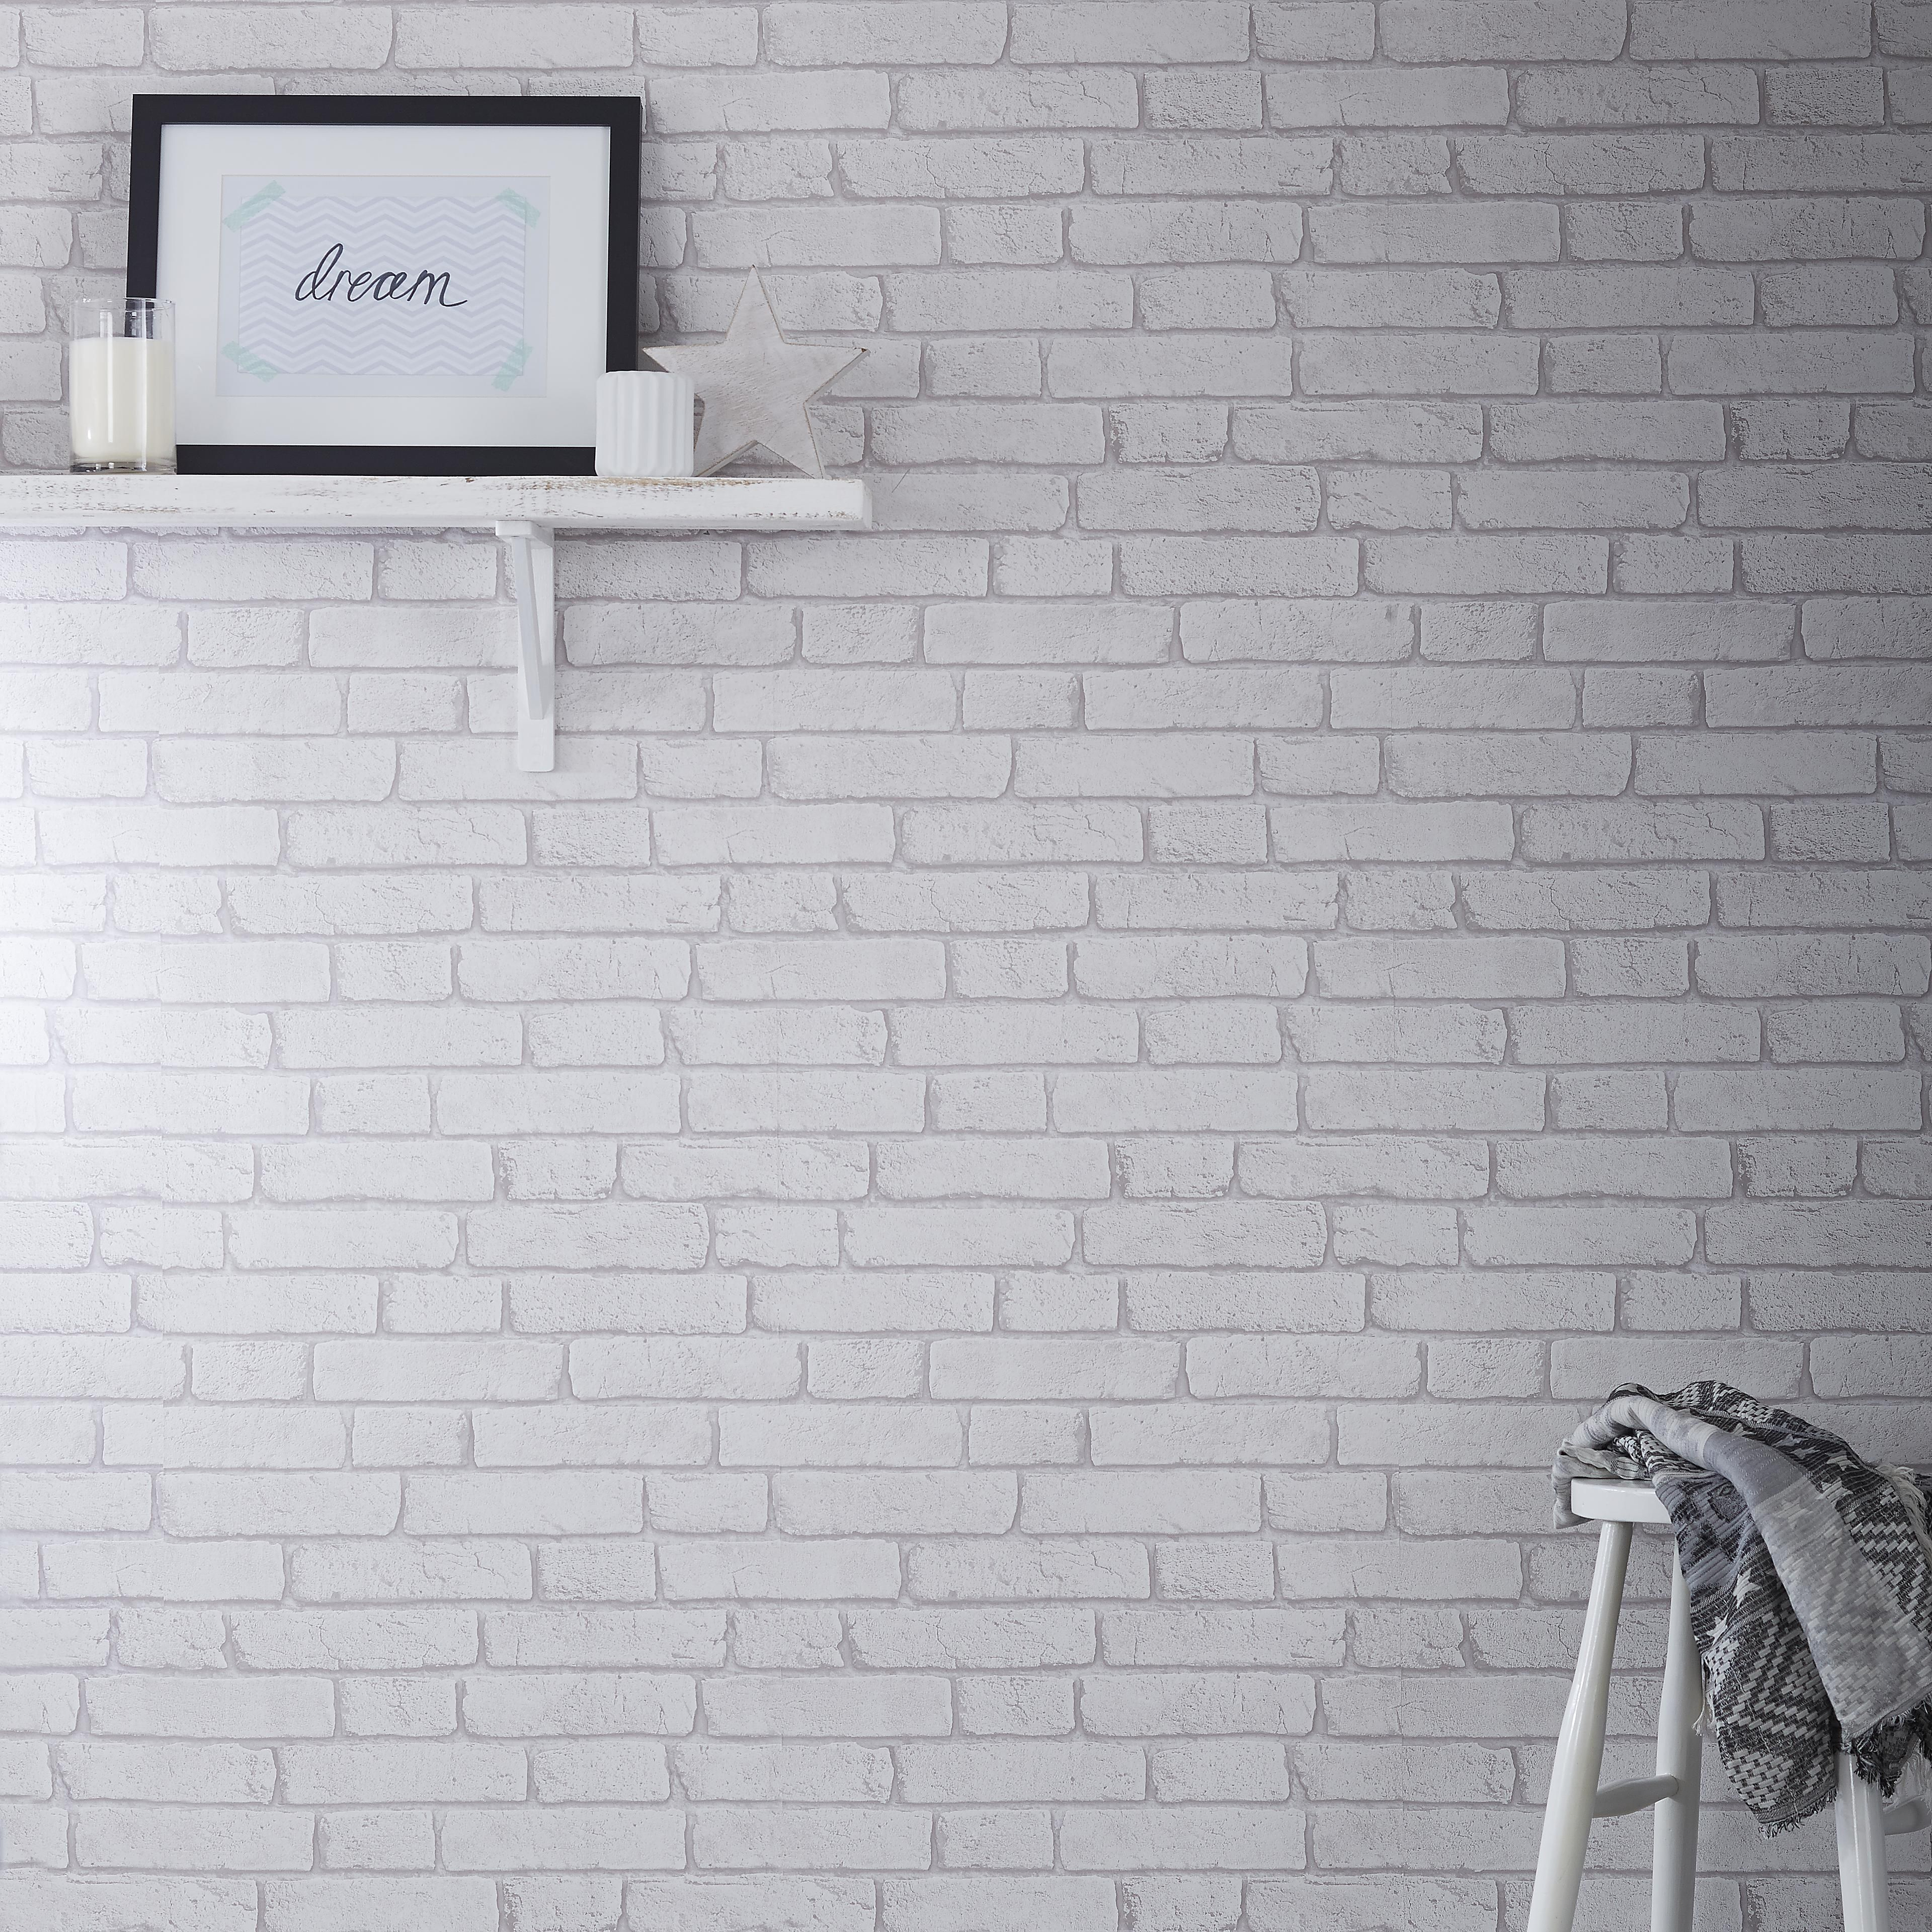 Use Wallpaper As An Affordable Way To Create The Brickwork Look In Your Home Brick Wallpaper Diy Brick Wall Wallpaper Diy Wallpaper